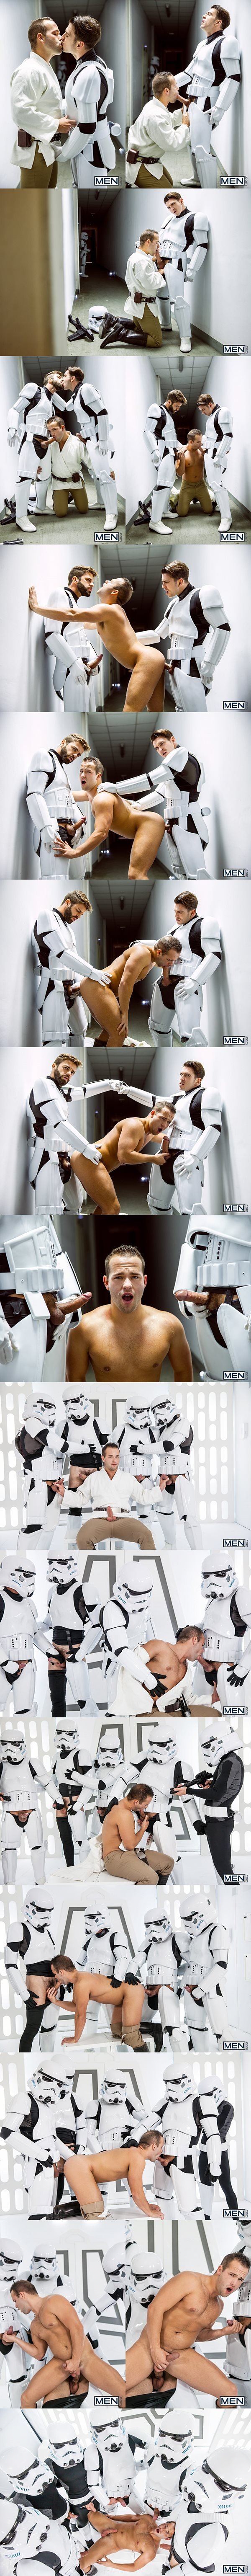 Paddy O'Brian, Hector De Silva and troopers gangbang Luke Adams in Star Wars 4 A Gay XXX Parody at Jizzorgy 02